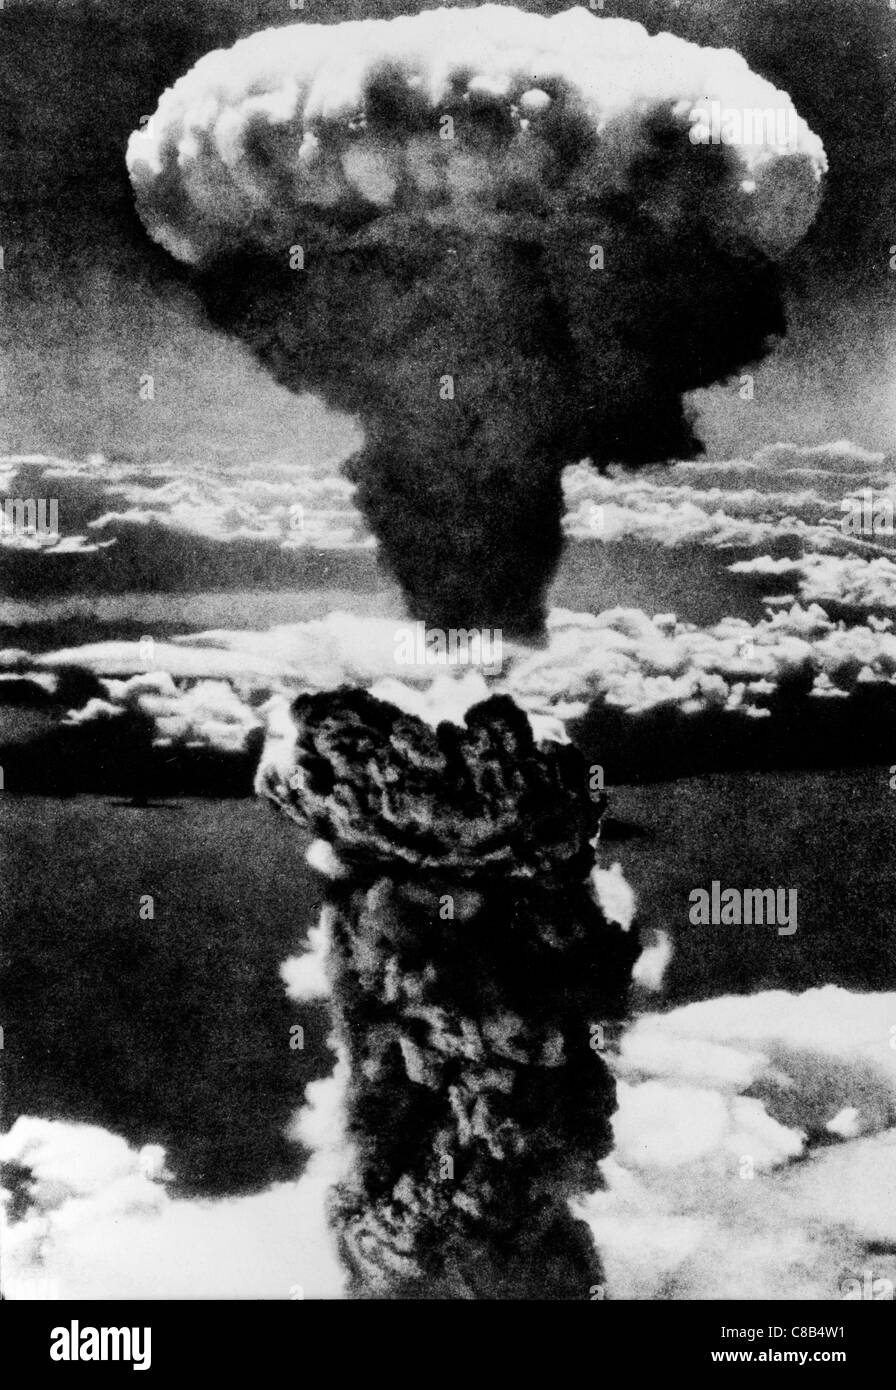 atomic explosion in Hiroshima,1945 Stock Photo